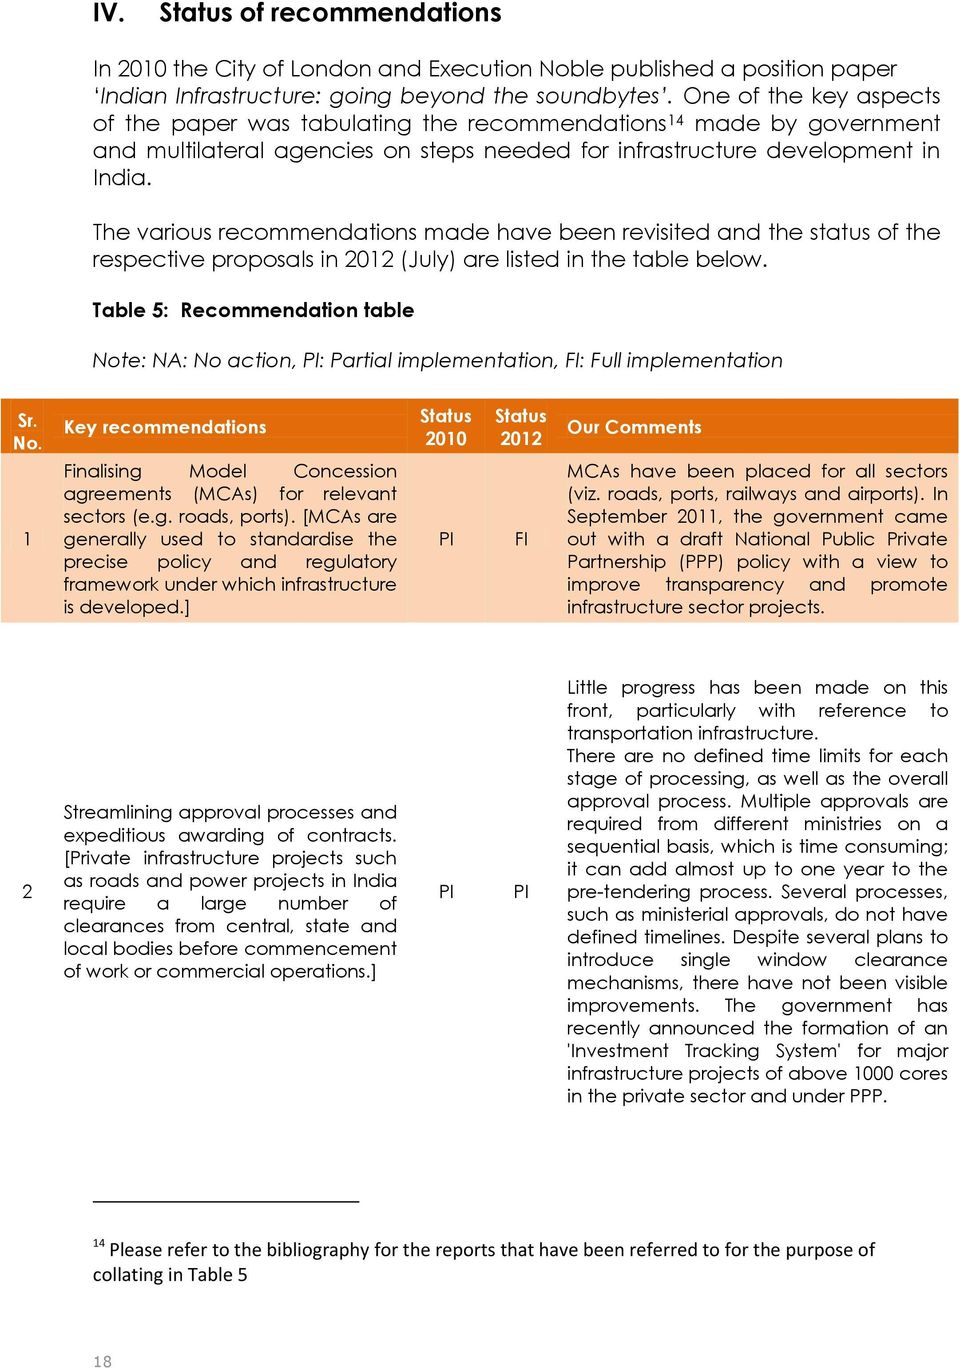 The various recommendations made have been revisited and the status of the respective proposals in 2012 (July) are listed in the table below.